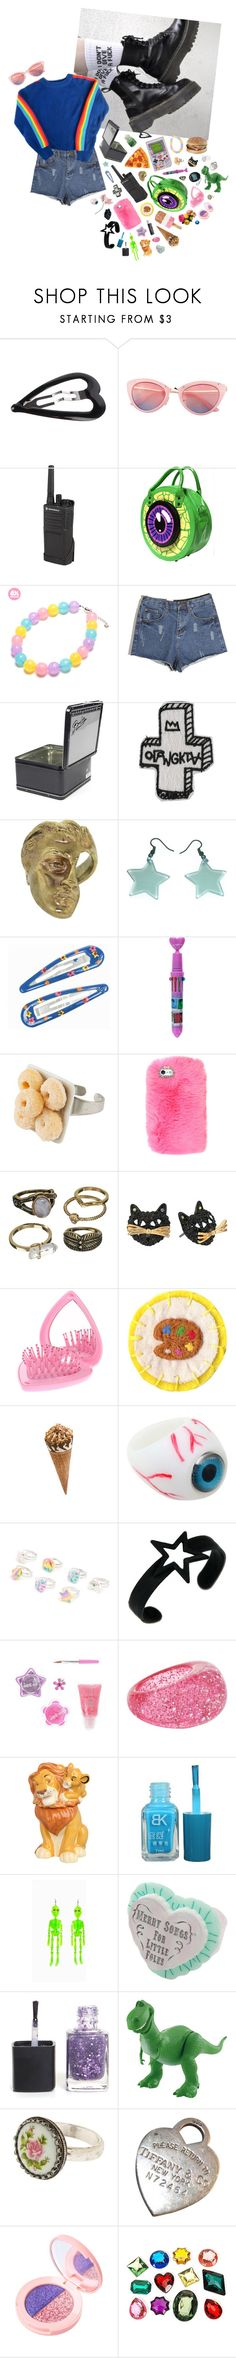 """""""I don't want you to say anything"""" by queenofrocknroll ❤ liked on Polyvore featuring Forever 21, Chicnova Fashion, Motorola, Sourpuss, ODD FUTURE, Yunus & Eliza, Polaroid, Mudd, Betsey Johnson and claire's"""